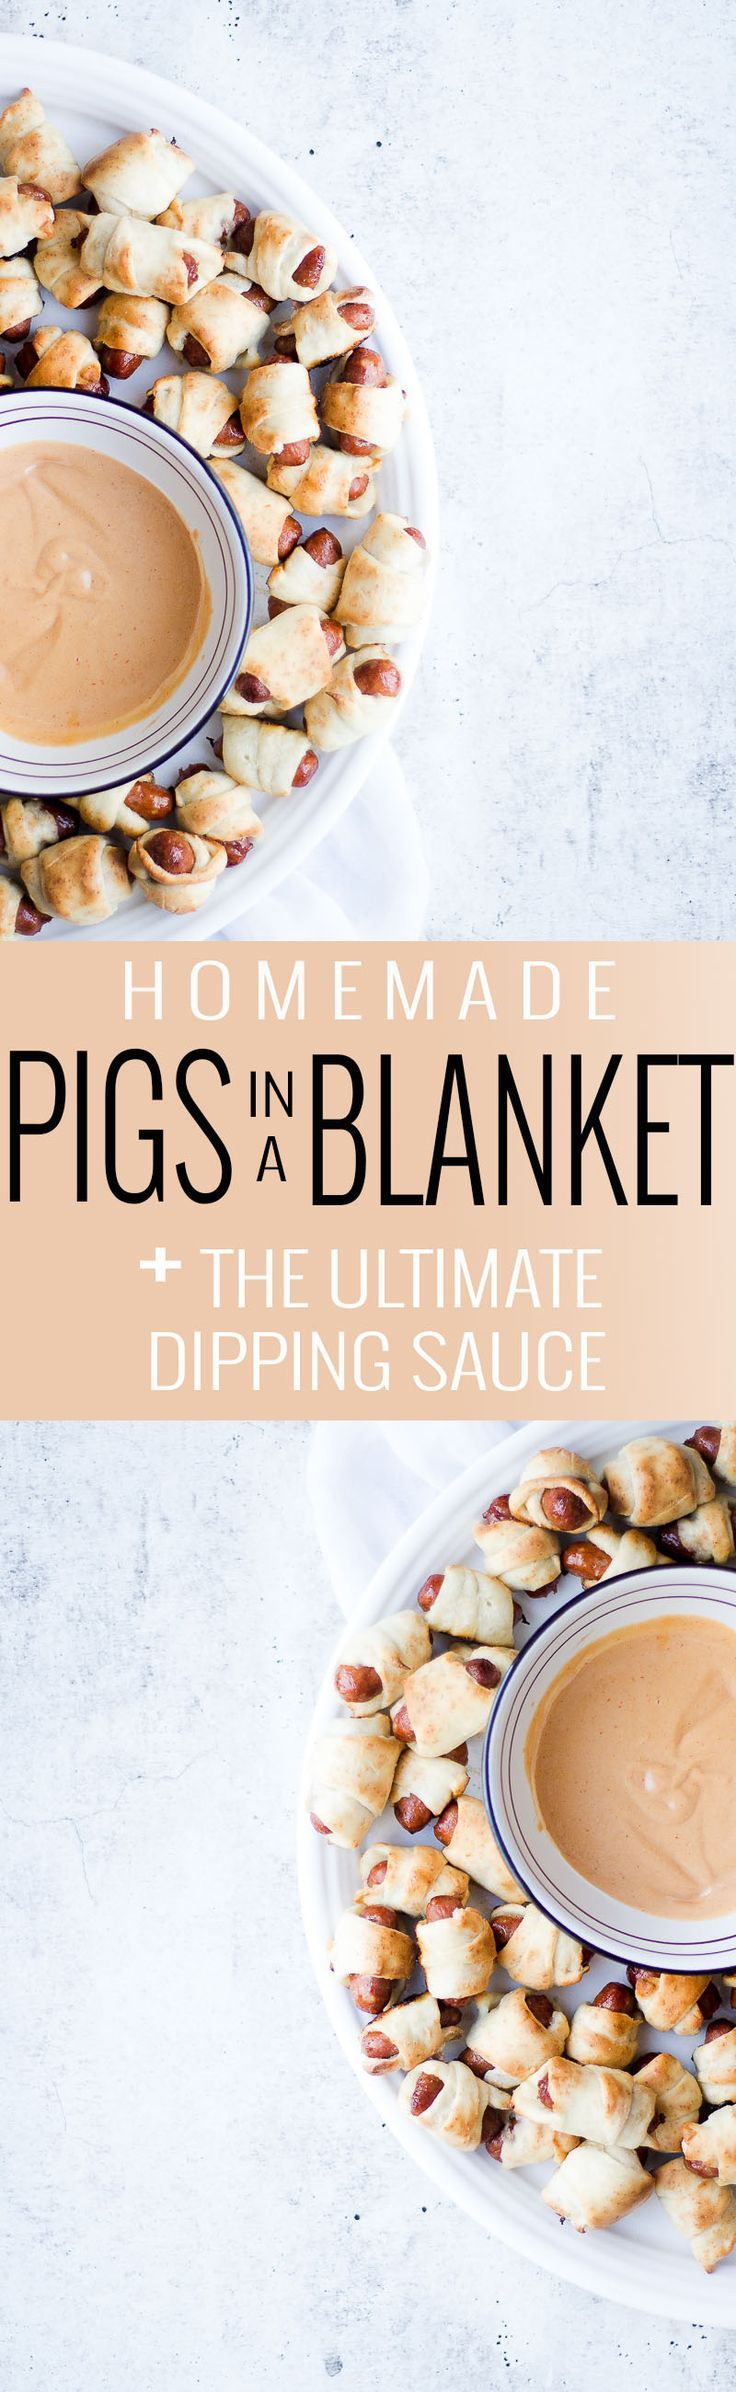 Homemade Pigs in a Blanket | how to make pigs in a blanket | pigs in a blanket recipe | easy appetizer recipes | recipes using hot dog | hot dog recipe ideas | kid friendly recipes || Oh So Delicioso